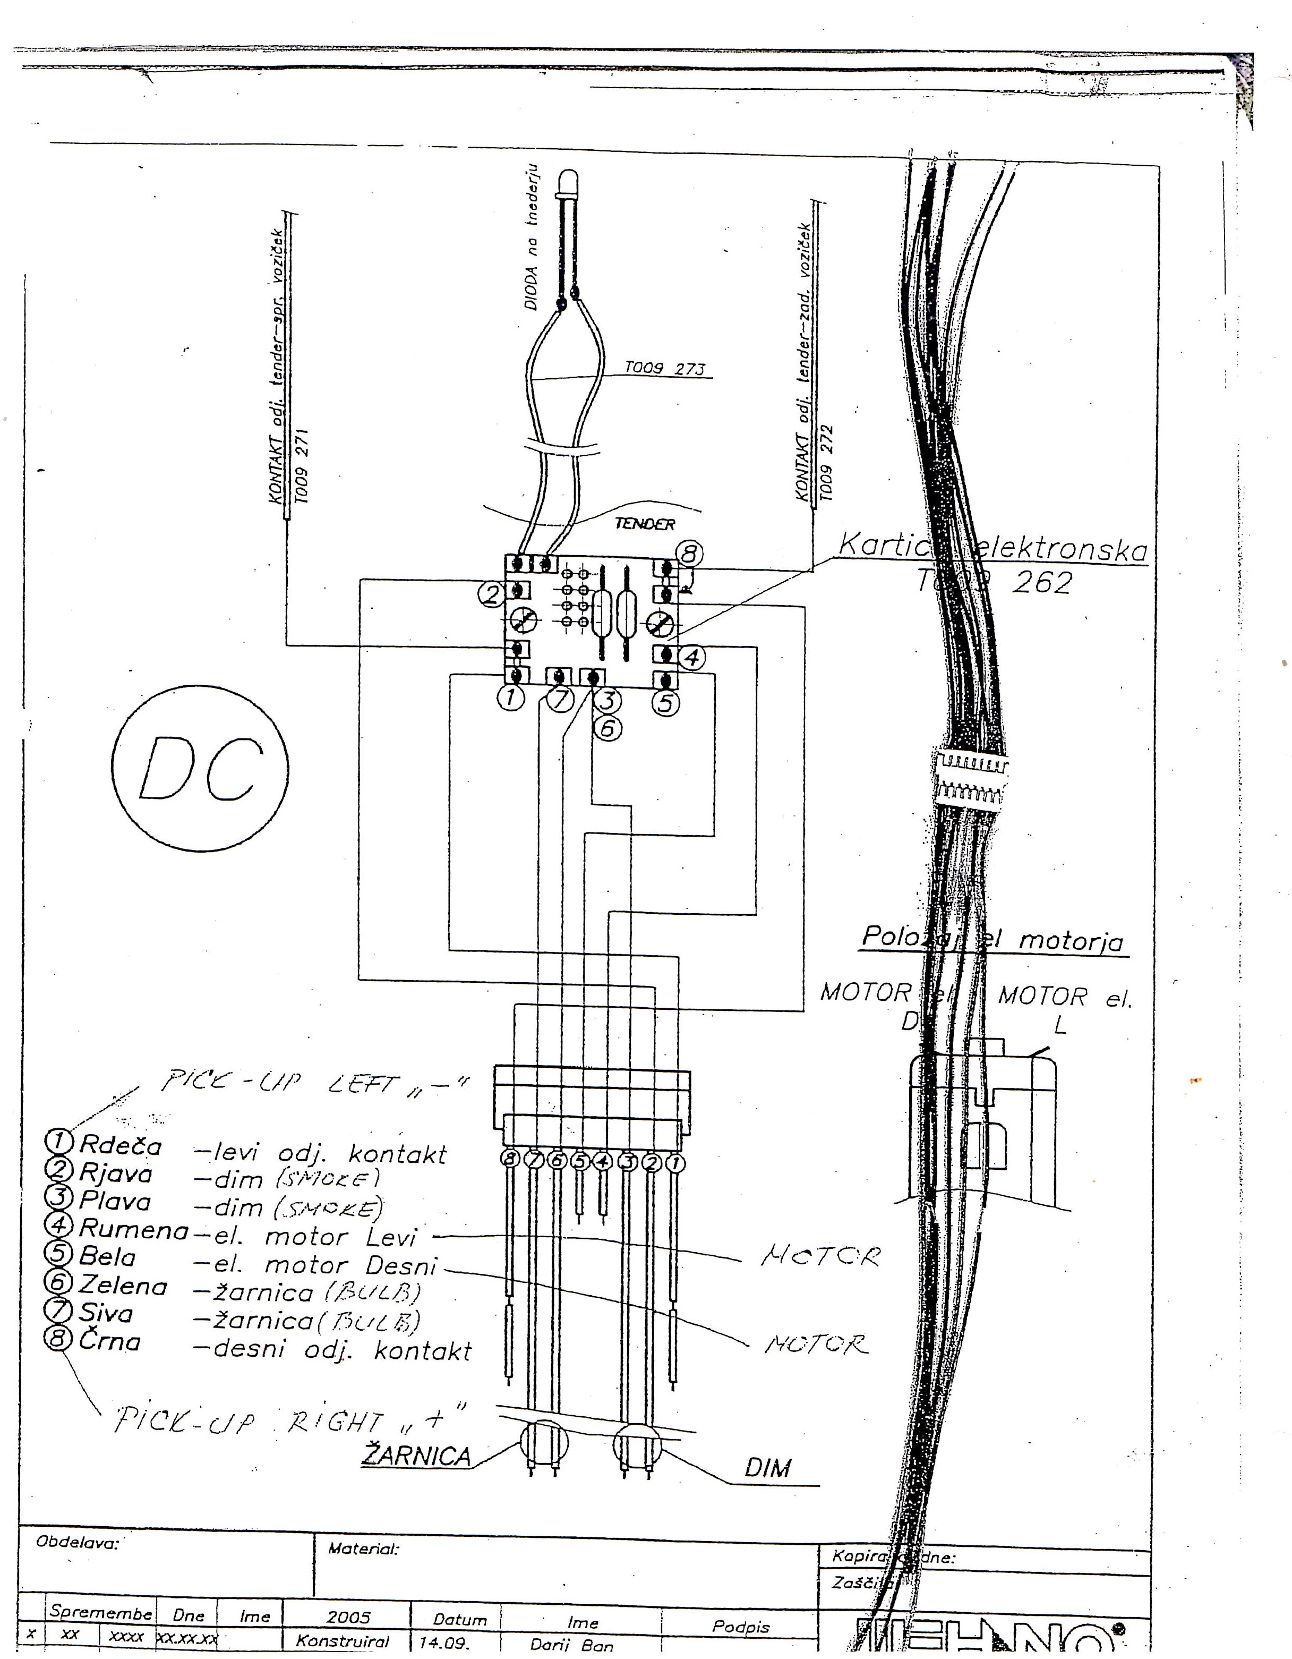 Locomotive Amp Tender Complete Wiring Harness Double Connection